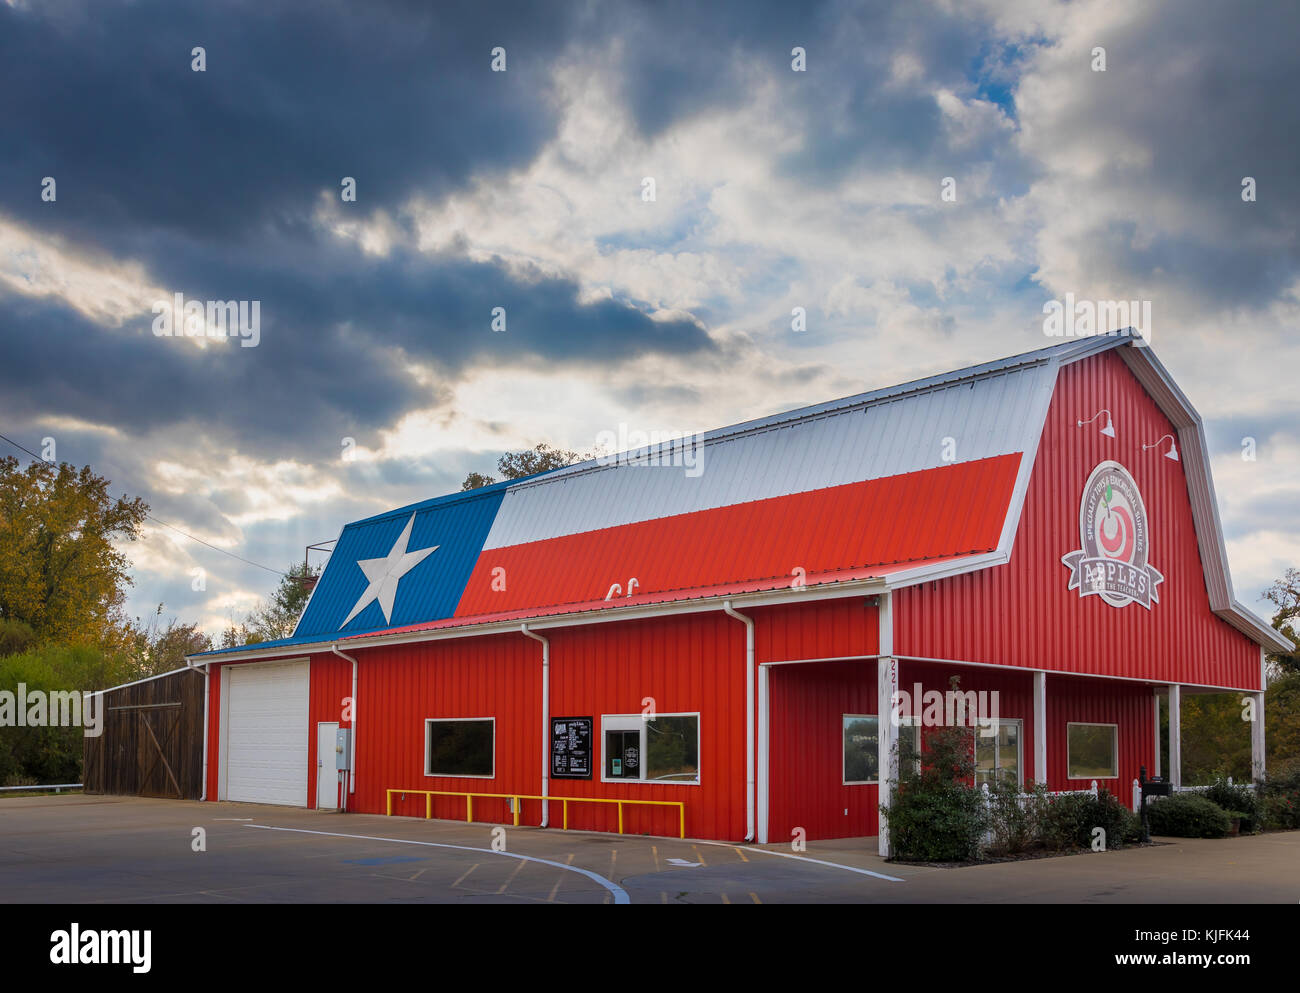 Store in Mount Pleasant, Texas - Stock Image